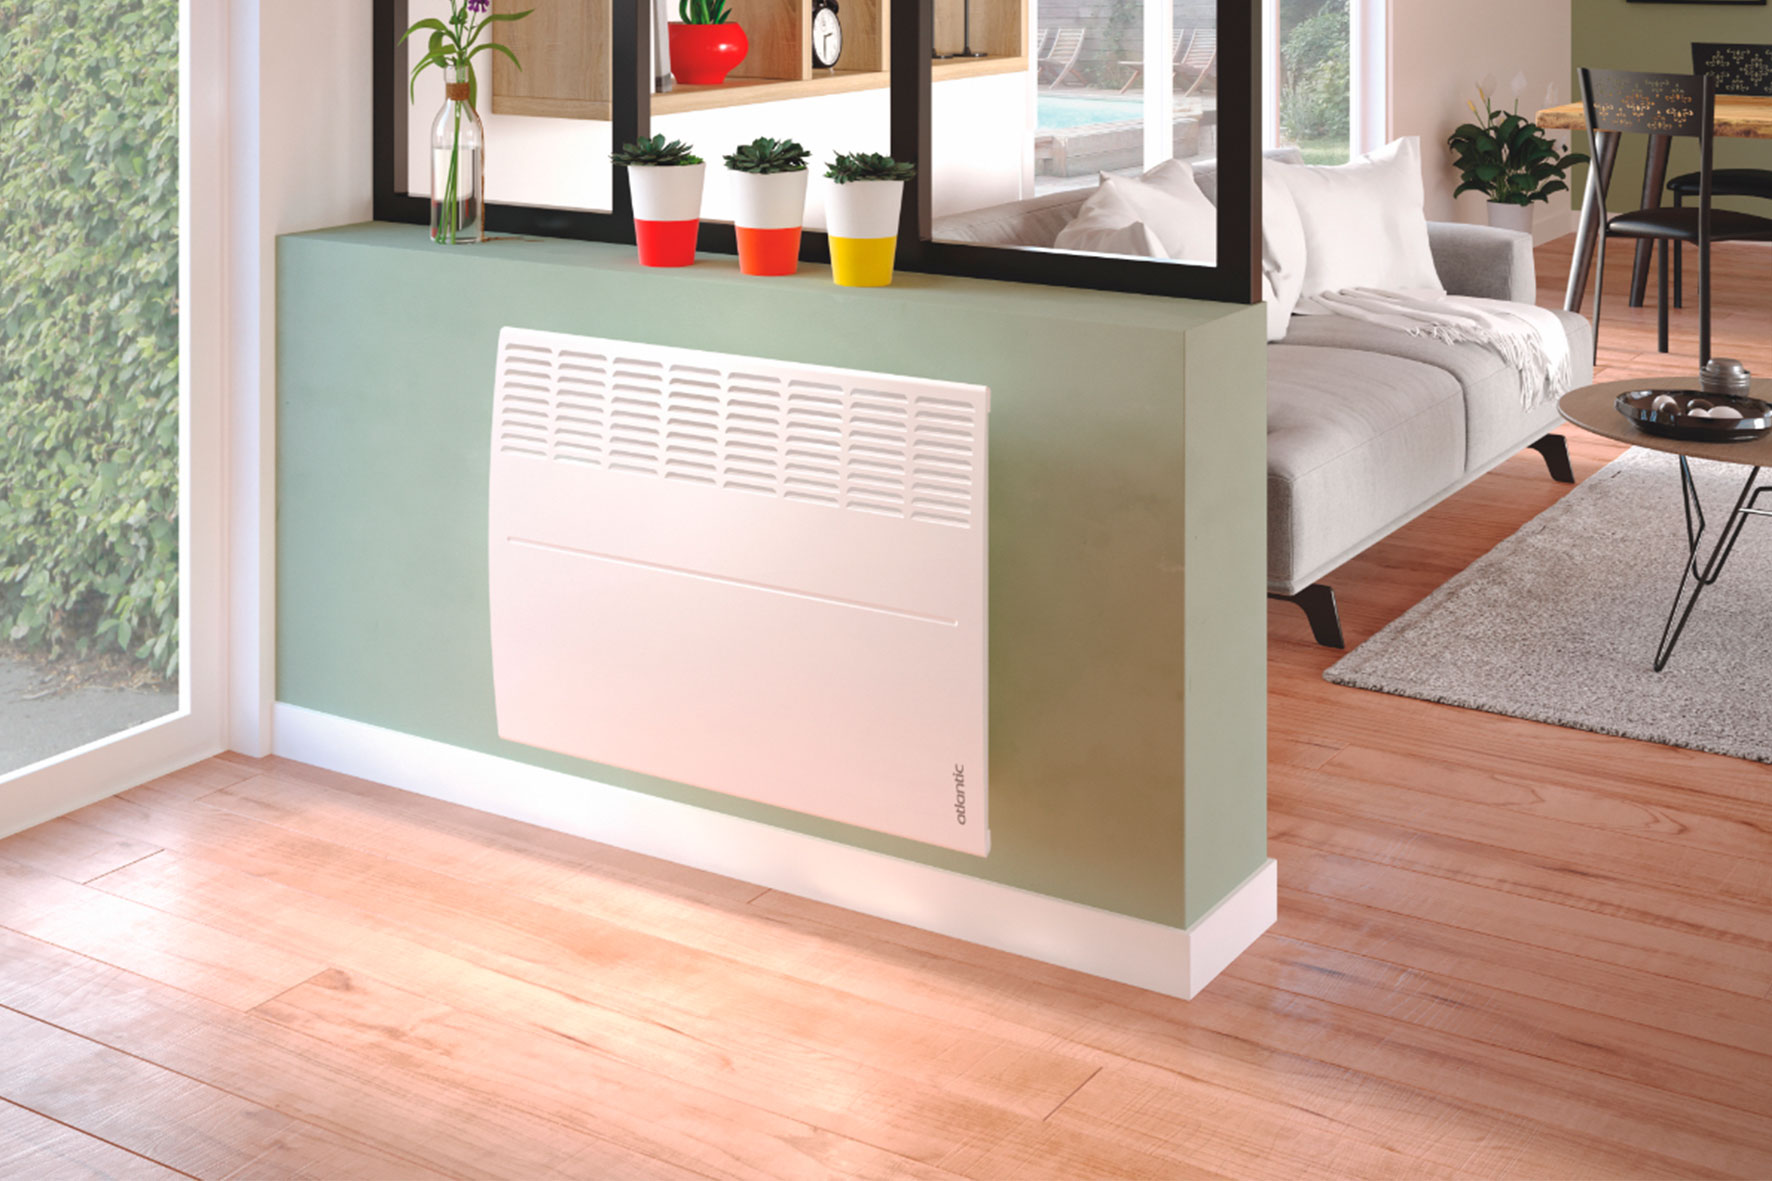 Atlantic electric heating available in Bosca | An efficient, comfortable and safe system 🇫🇷